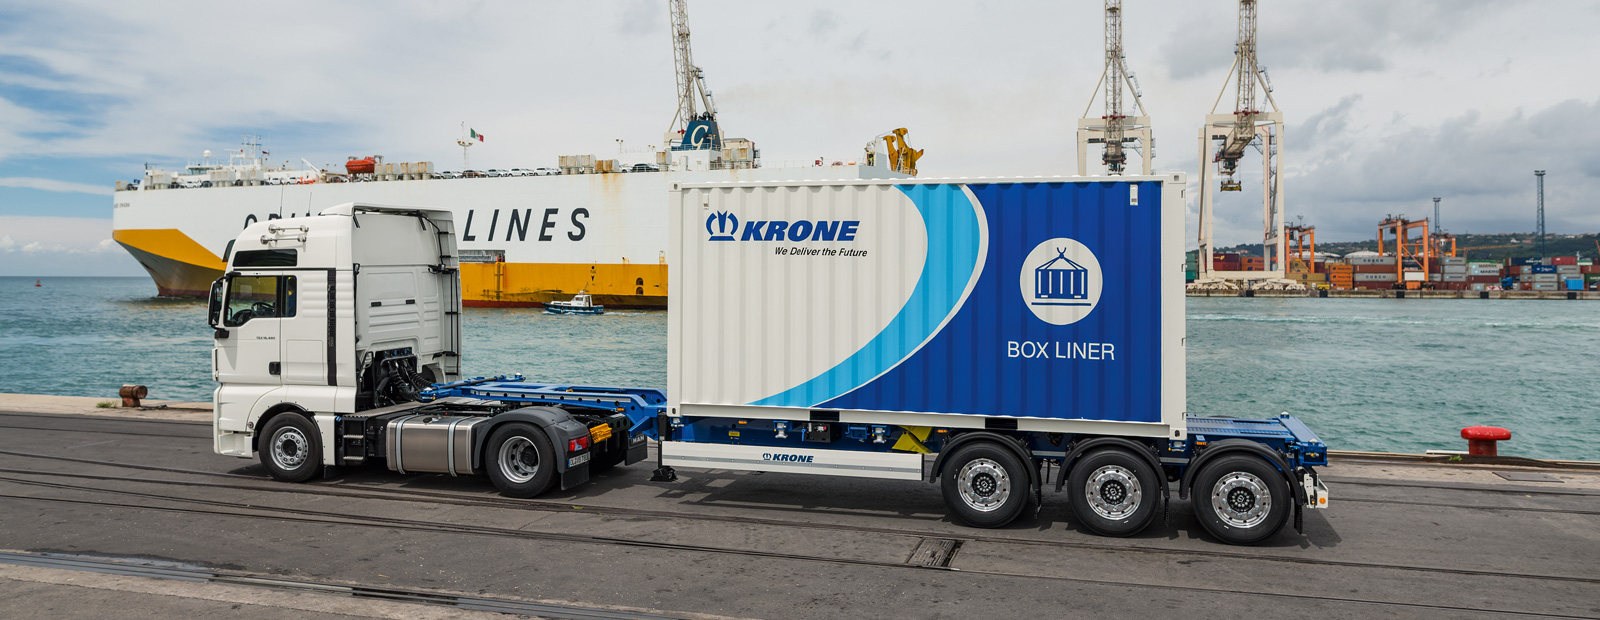 Krone Container Chassis manoeuvrable in container traffic